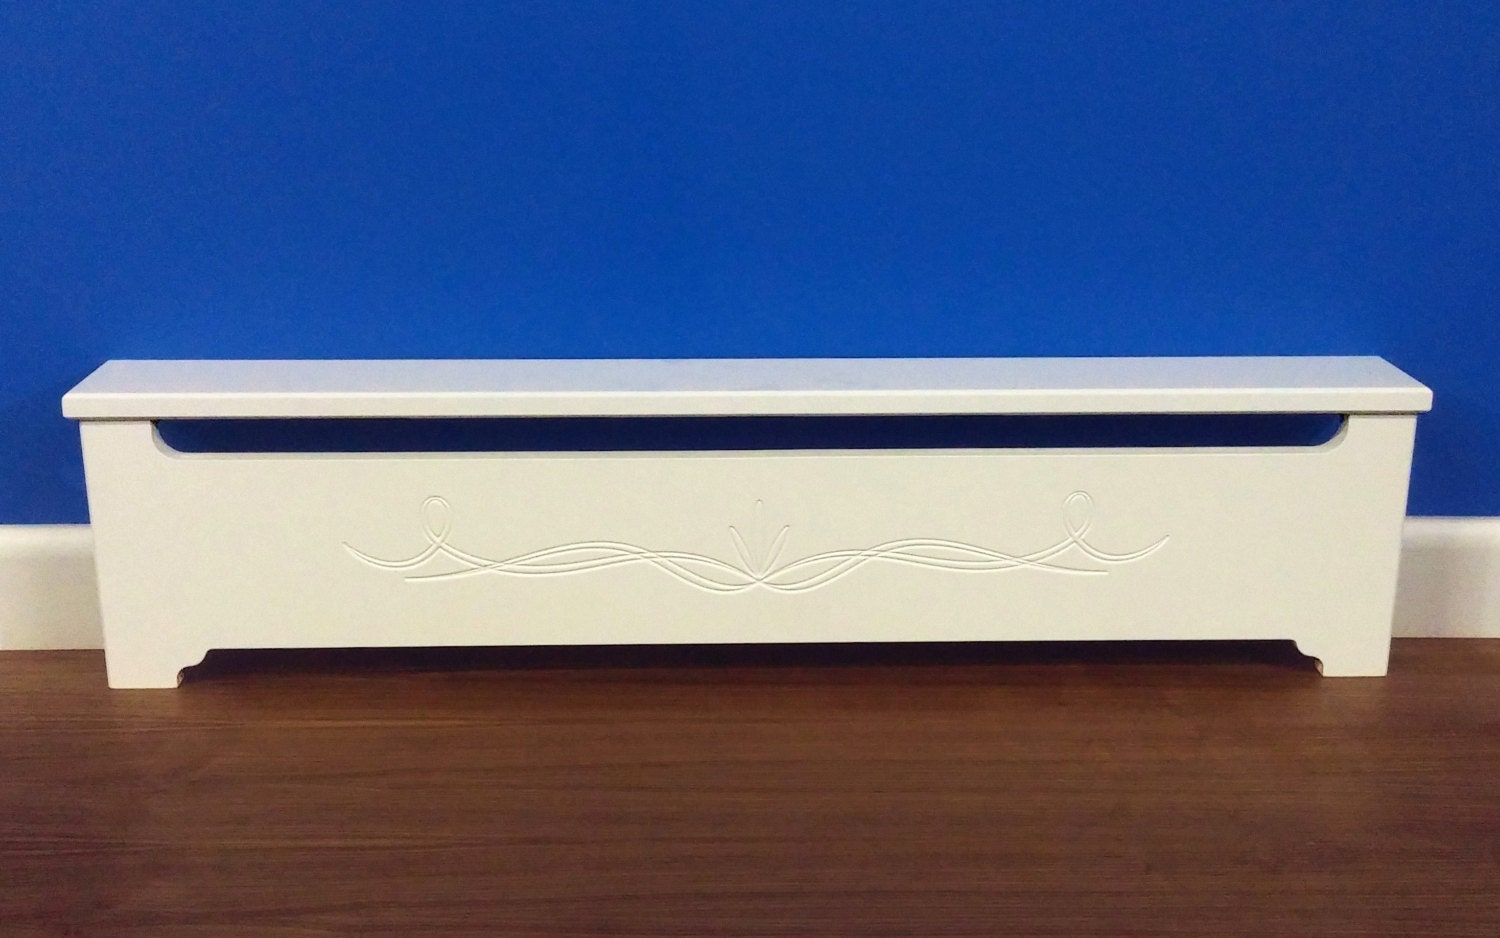 New Designer Series Baseboard Heater Covers Custom Made To